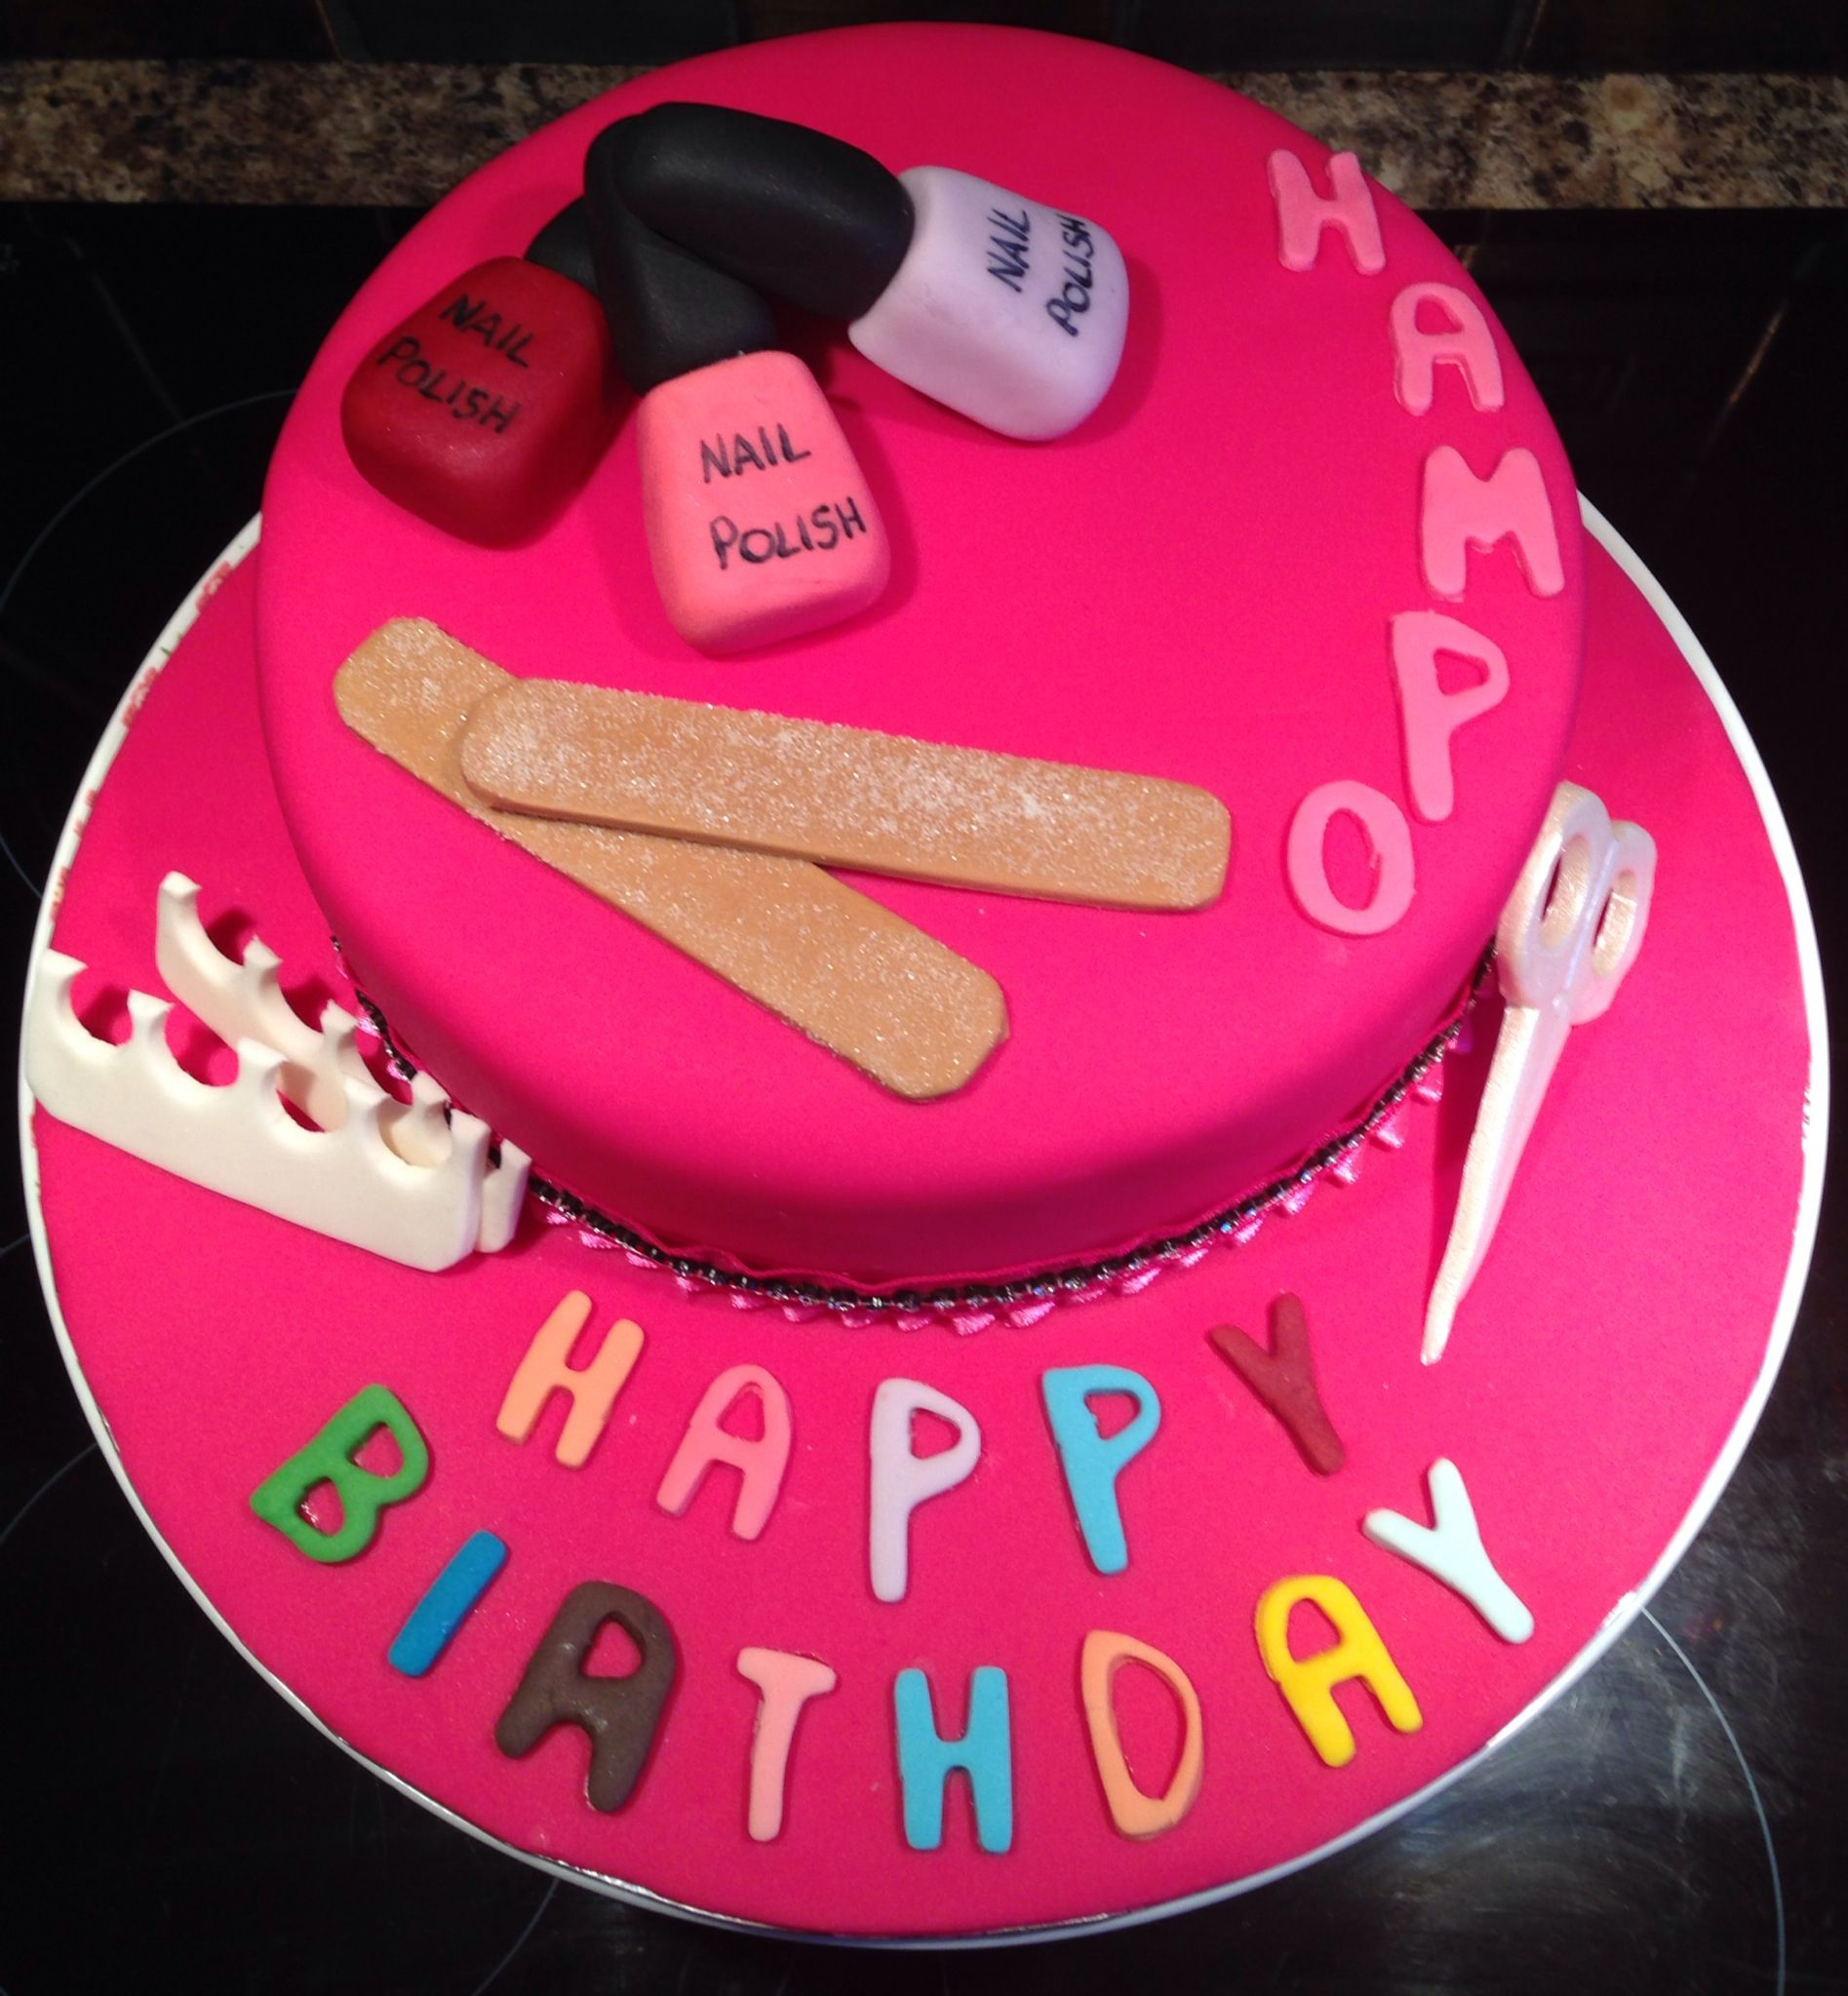 Birthday Cake Nails: Emery Boards, Scissors And Toe Spacers